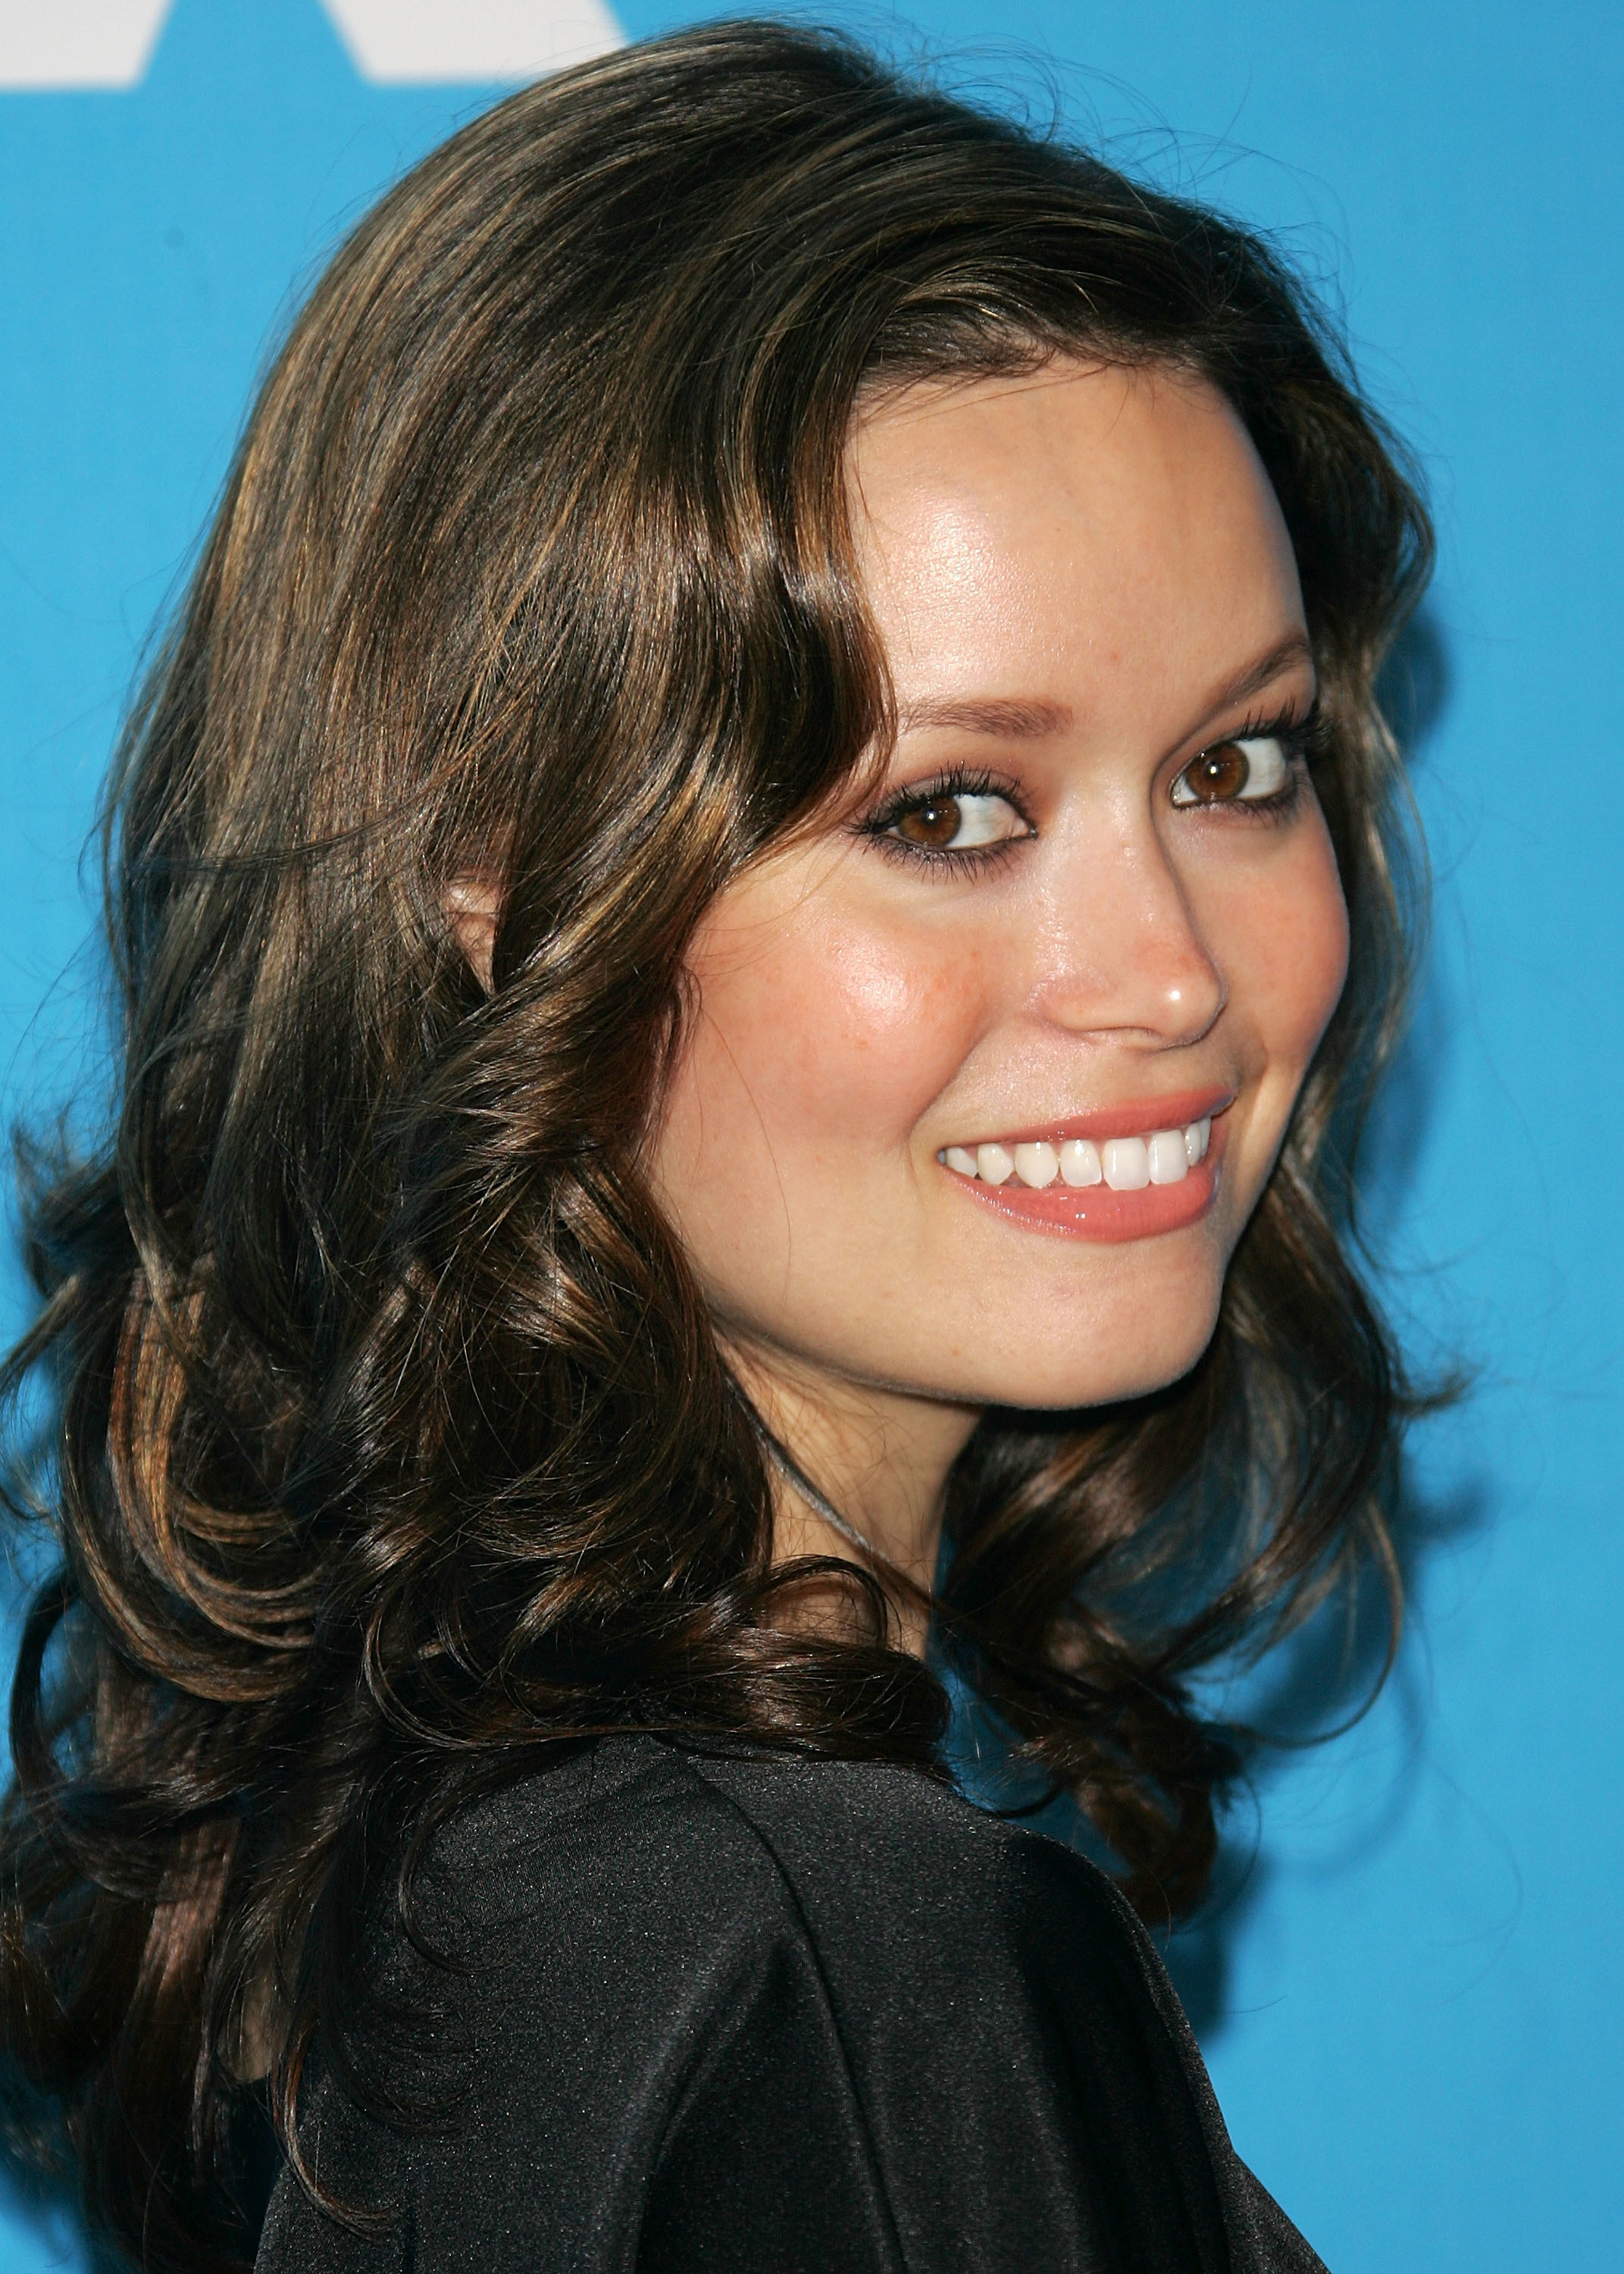 woman Actress summer glau HD Wallpaper